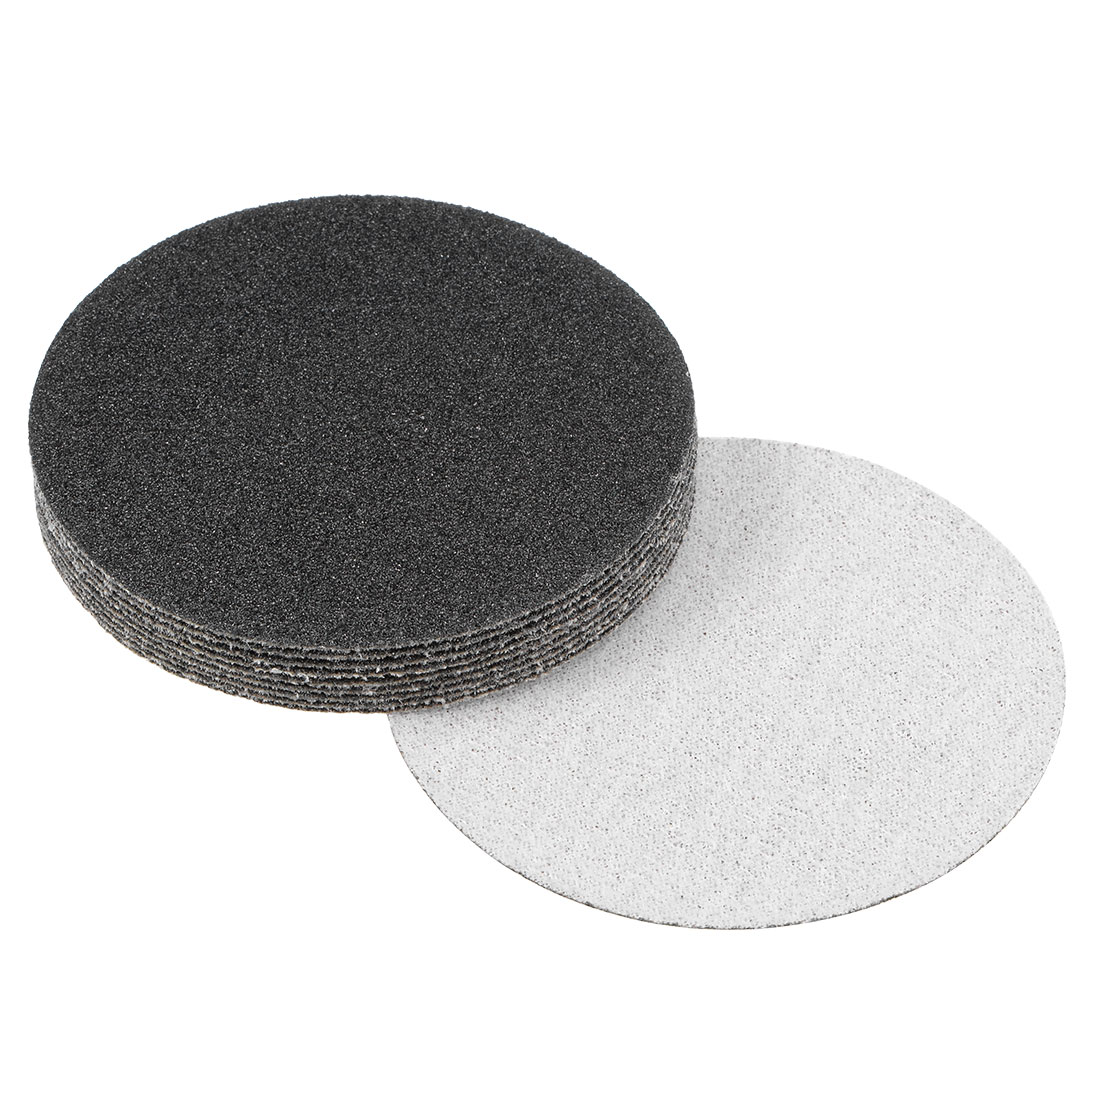 3 inch Wet Dry Discs 80 Grit Hook and Loop Sanding Disc Silicon Carbide 10pcs